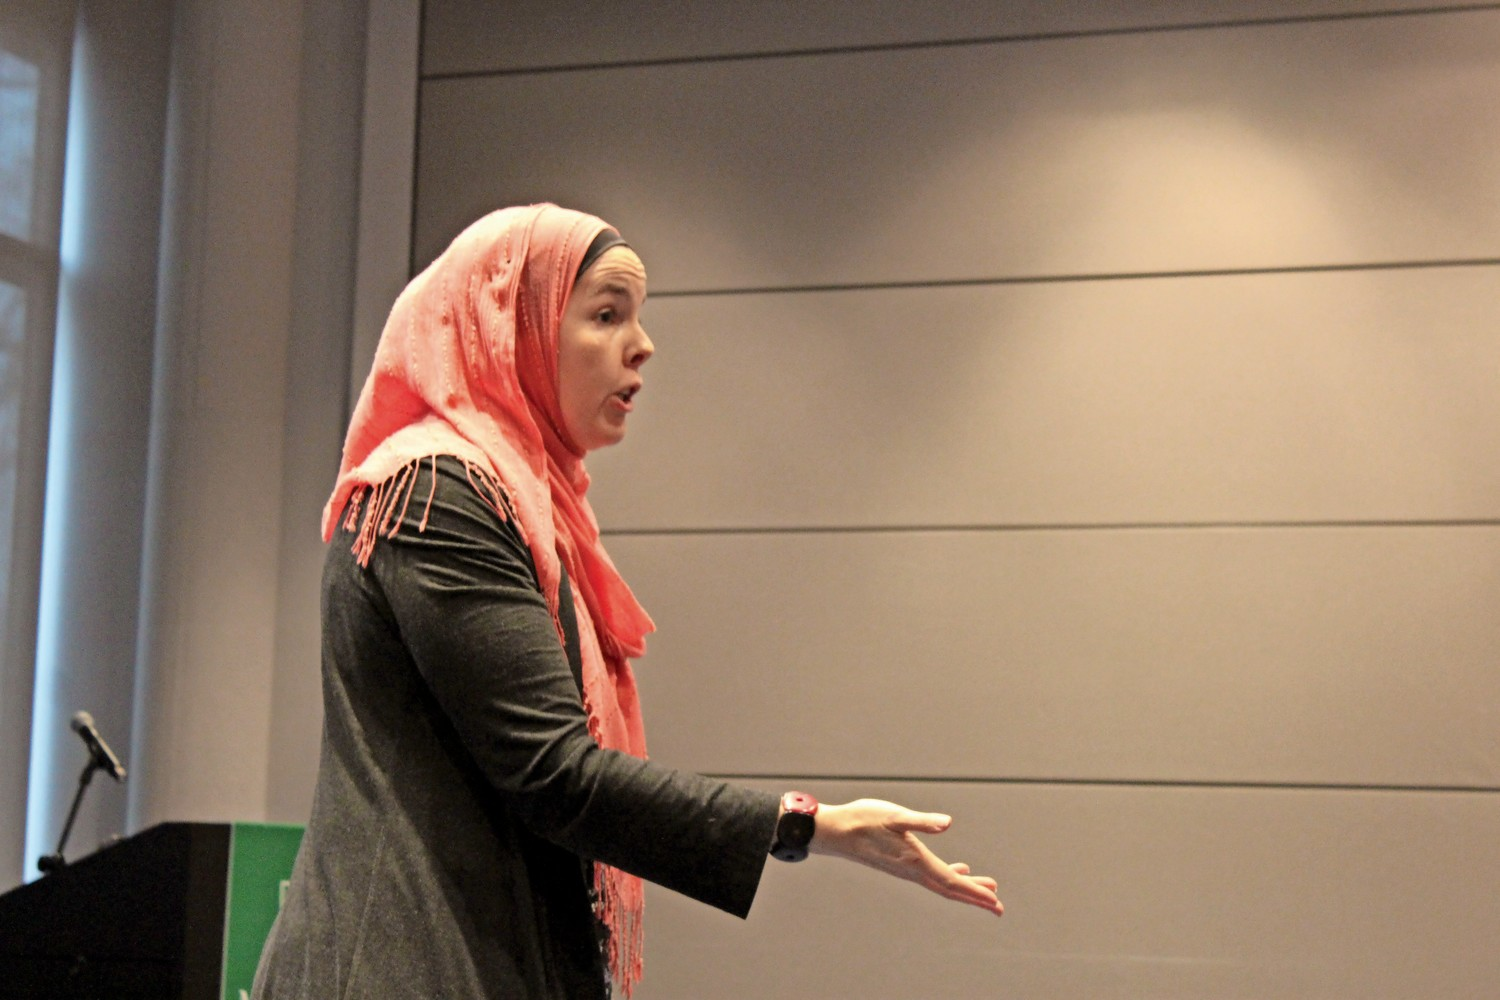 Jerusha Lamptey, a professor of Islam at Union Theological Seminary, talks about the the effects media coverage has on the perception of Muslims in America at the 'Women in Islam' event at Manhattan College.